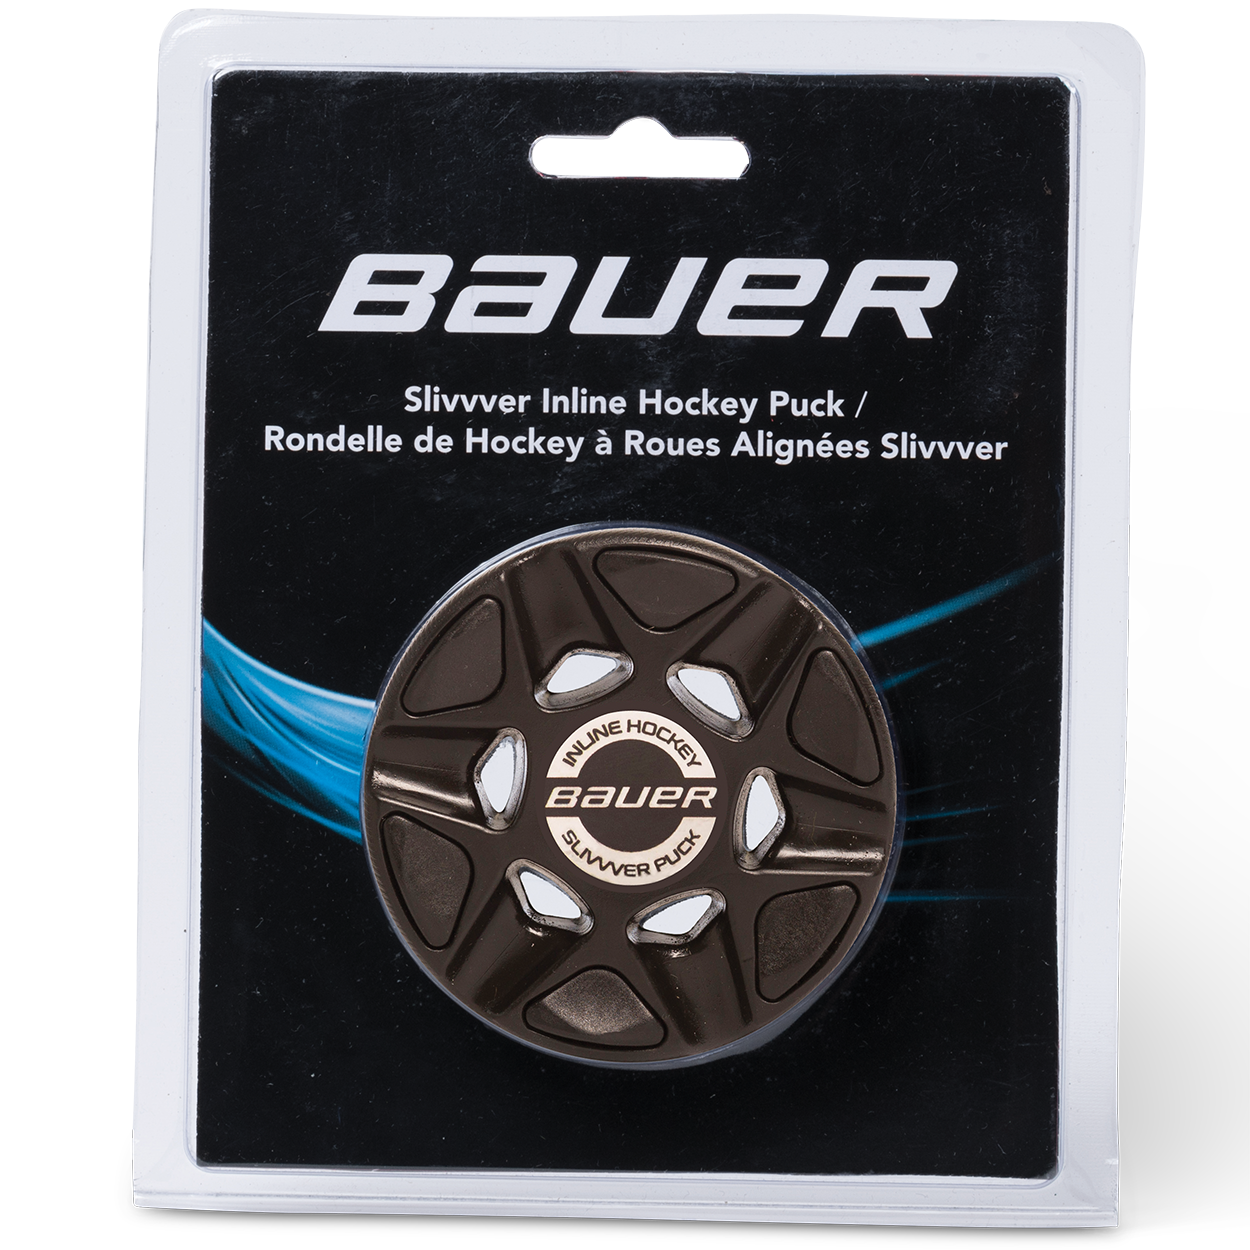 BAUER RH SLIVVVER PUCK (SINGLE PACKAGED),BLK,moyen